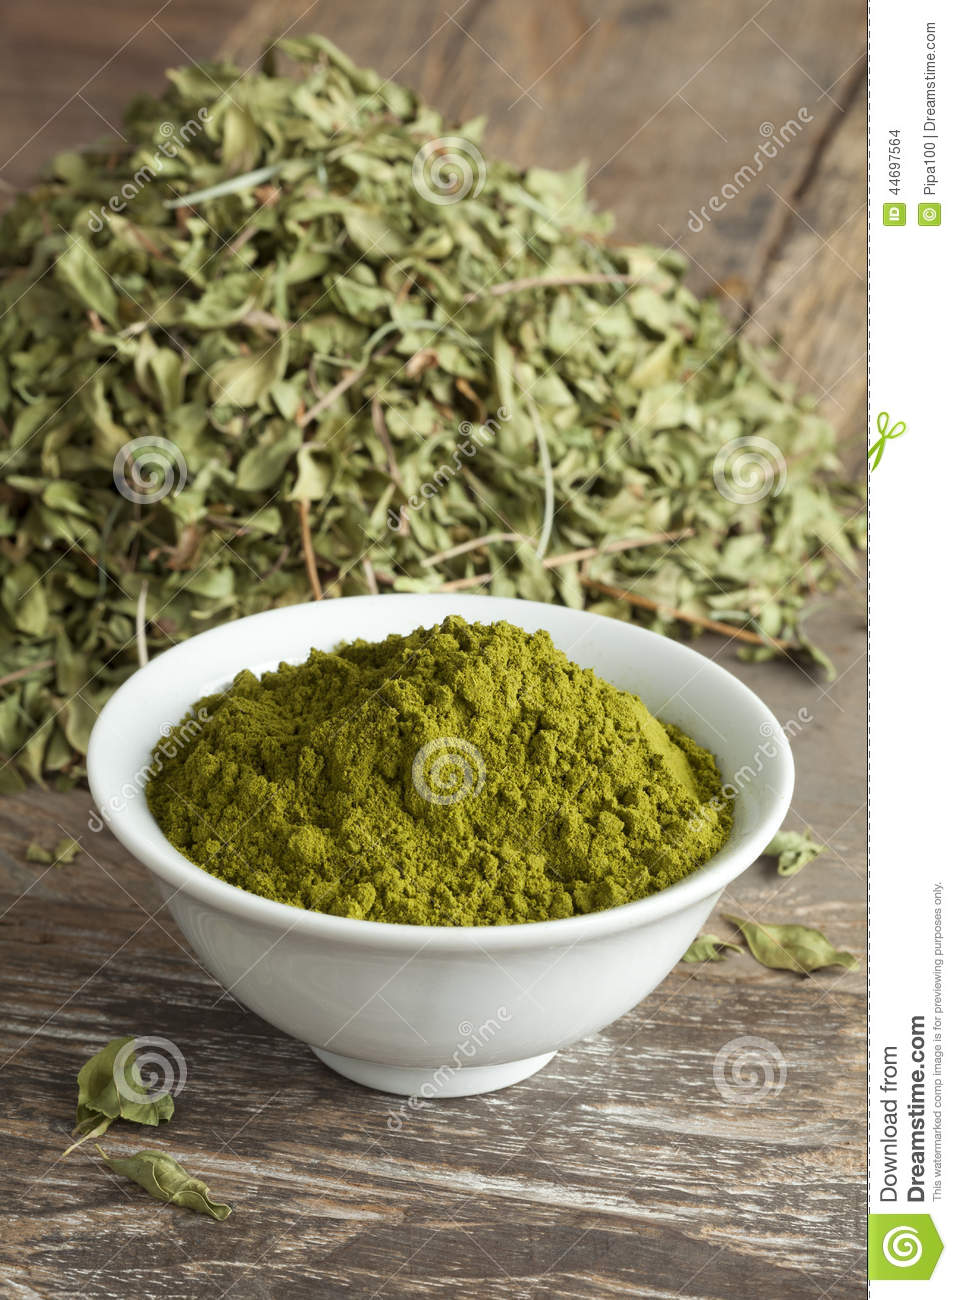 Moroccan henna leaves and powder